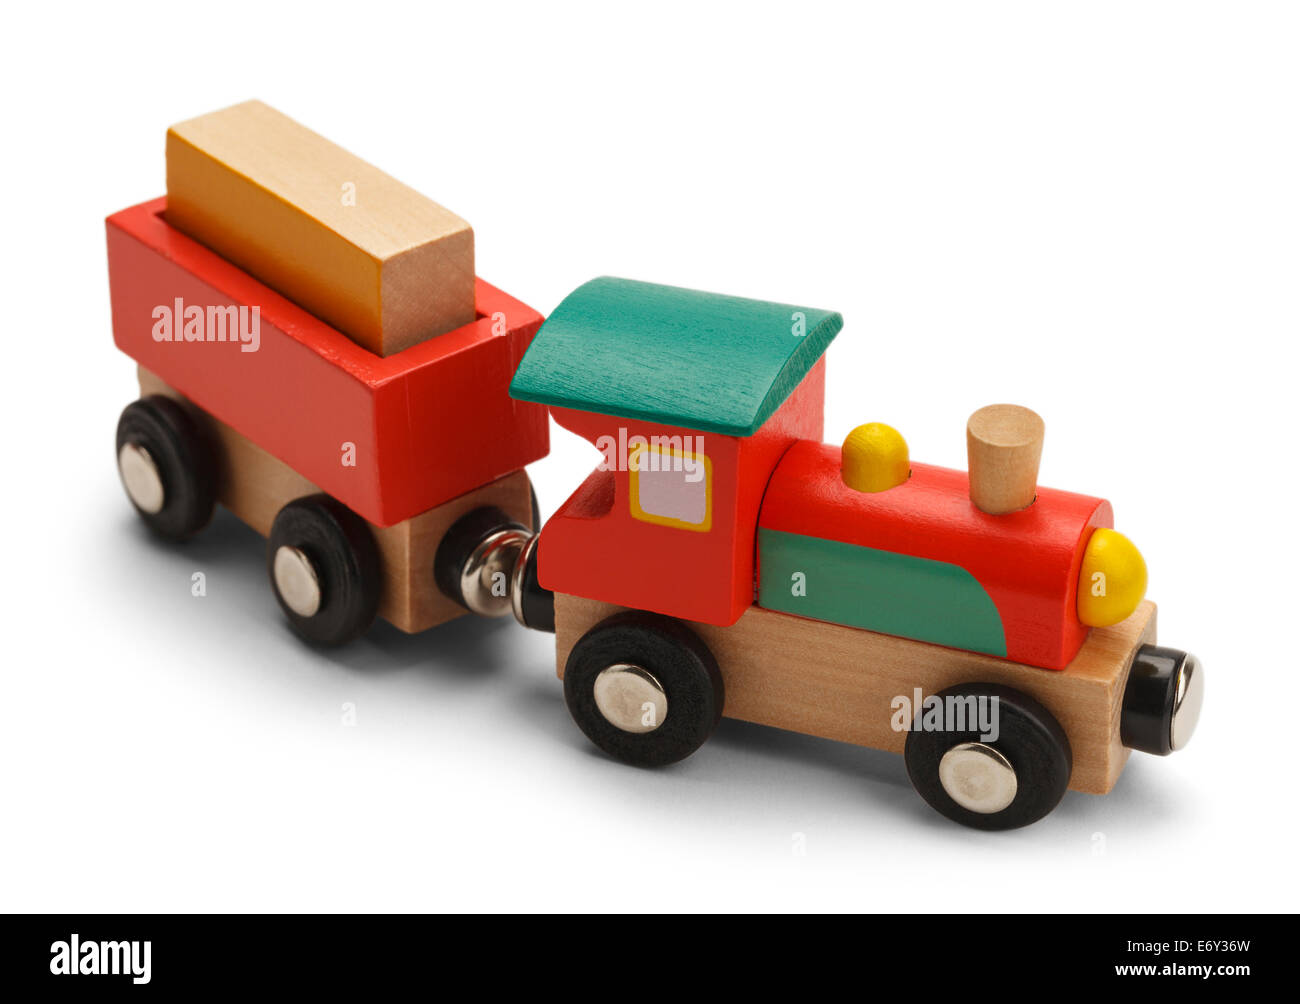 Wood Toy Train Isolated on White Background. - Stock Image